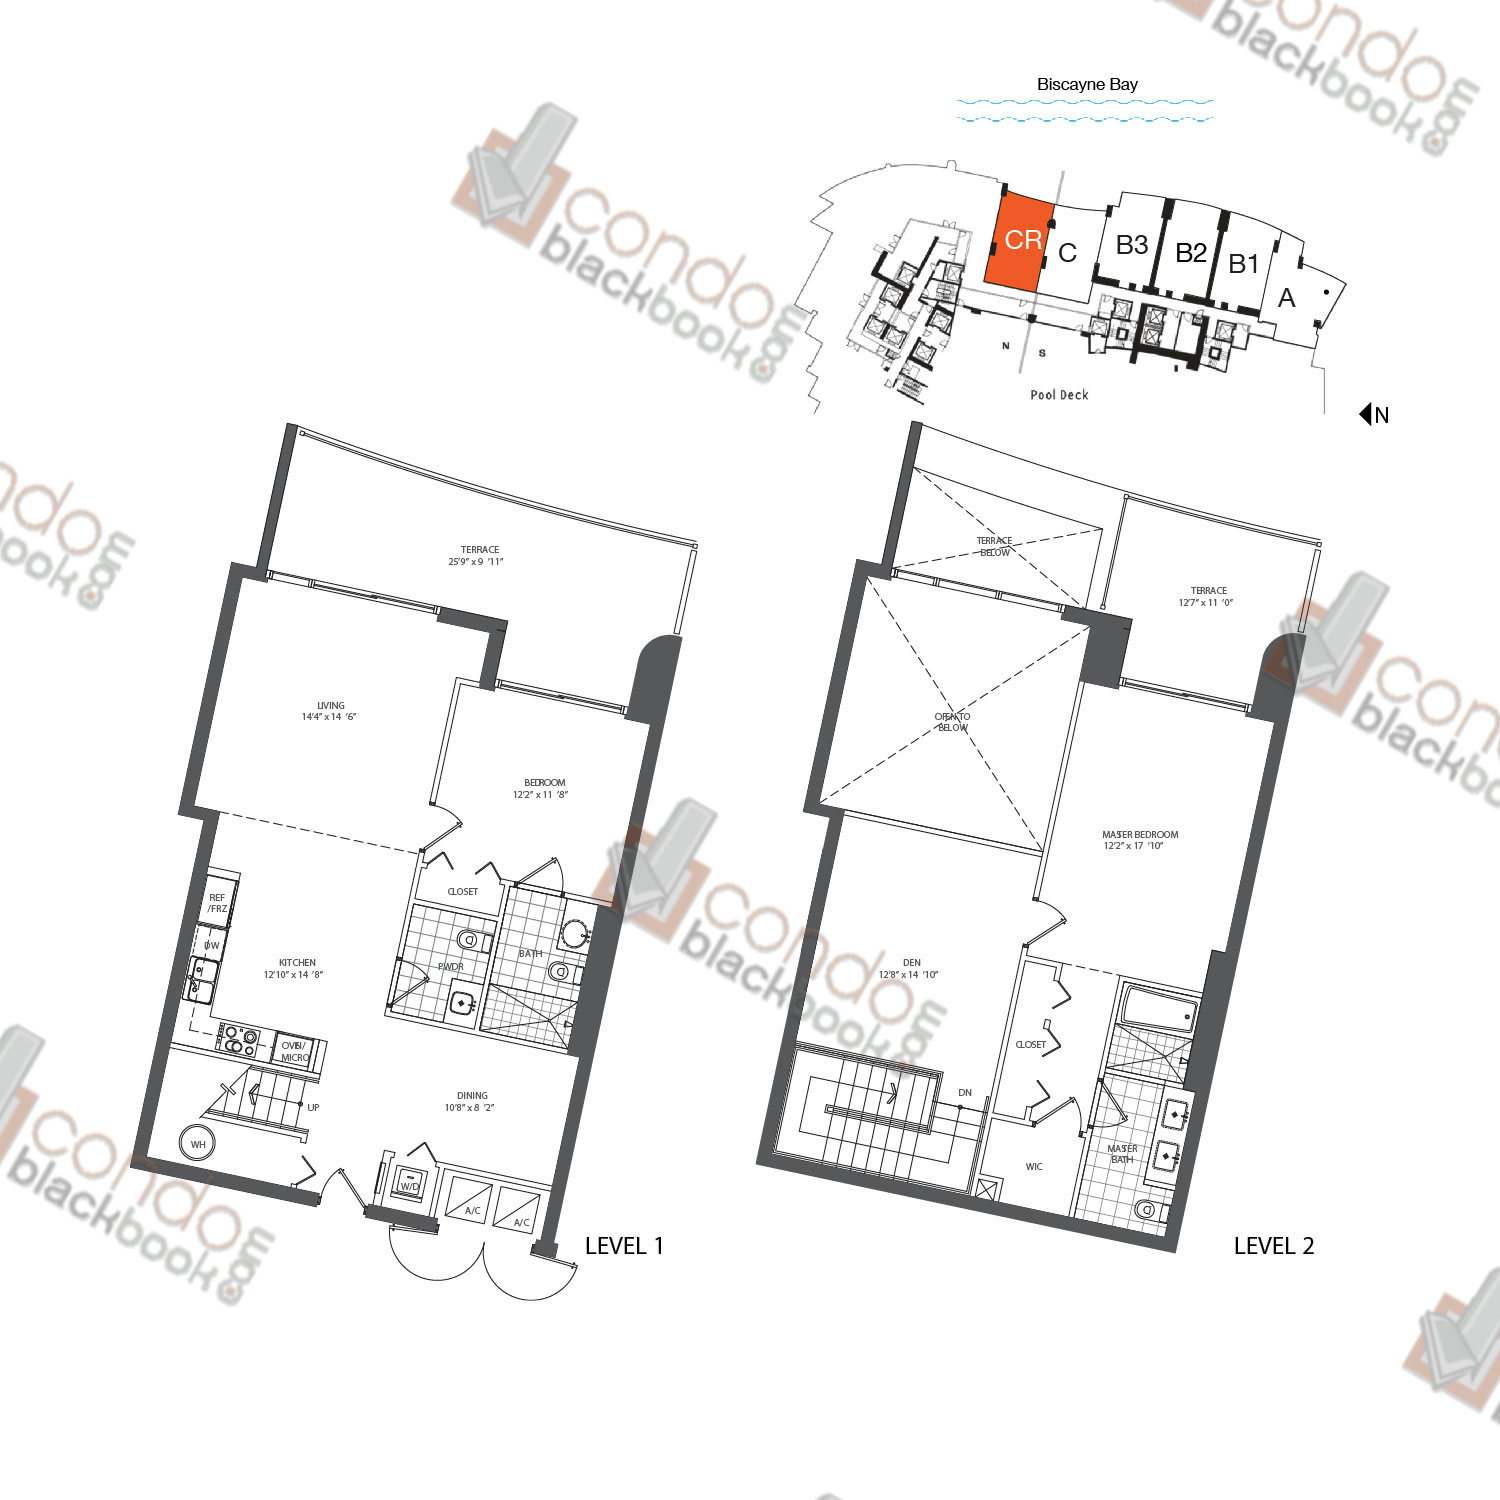 Floor plan for 900 Biscayne Bay Downtown Miami Miami, model TH CR, line 02, 2/2.5 bedrooms, 1,579 sq ft